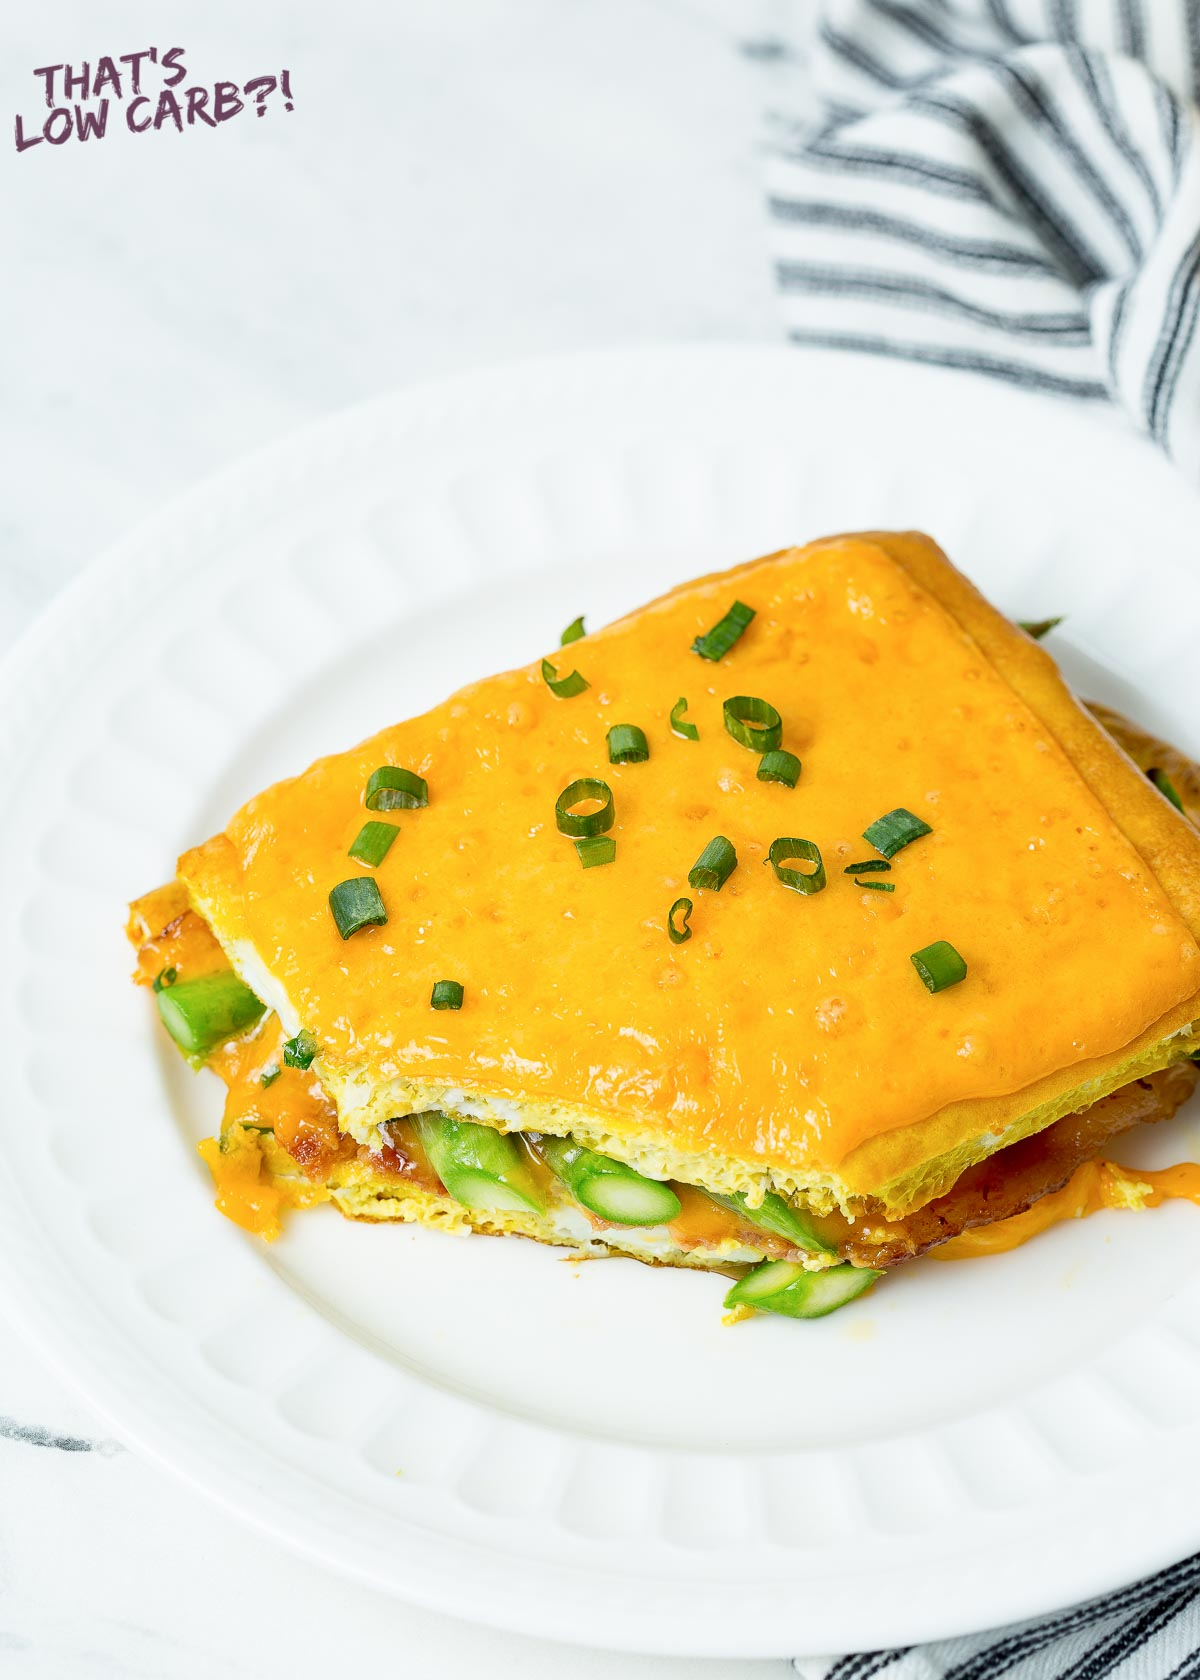 Slice of Breakfast lasagna on white plate